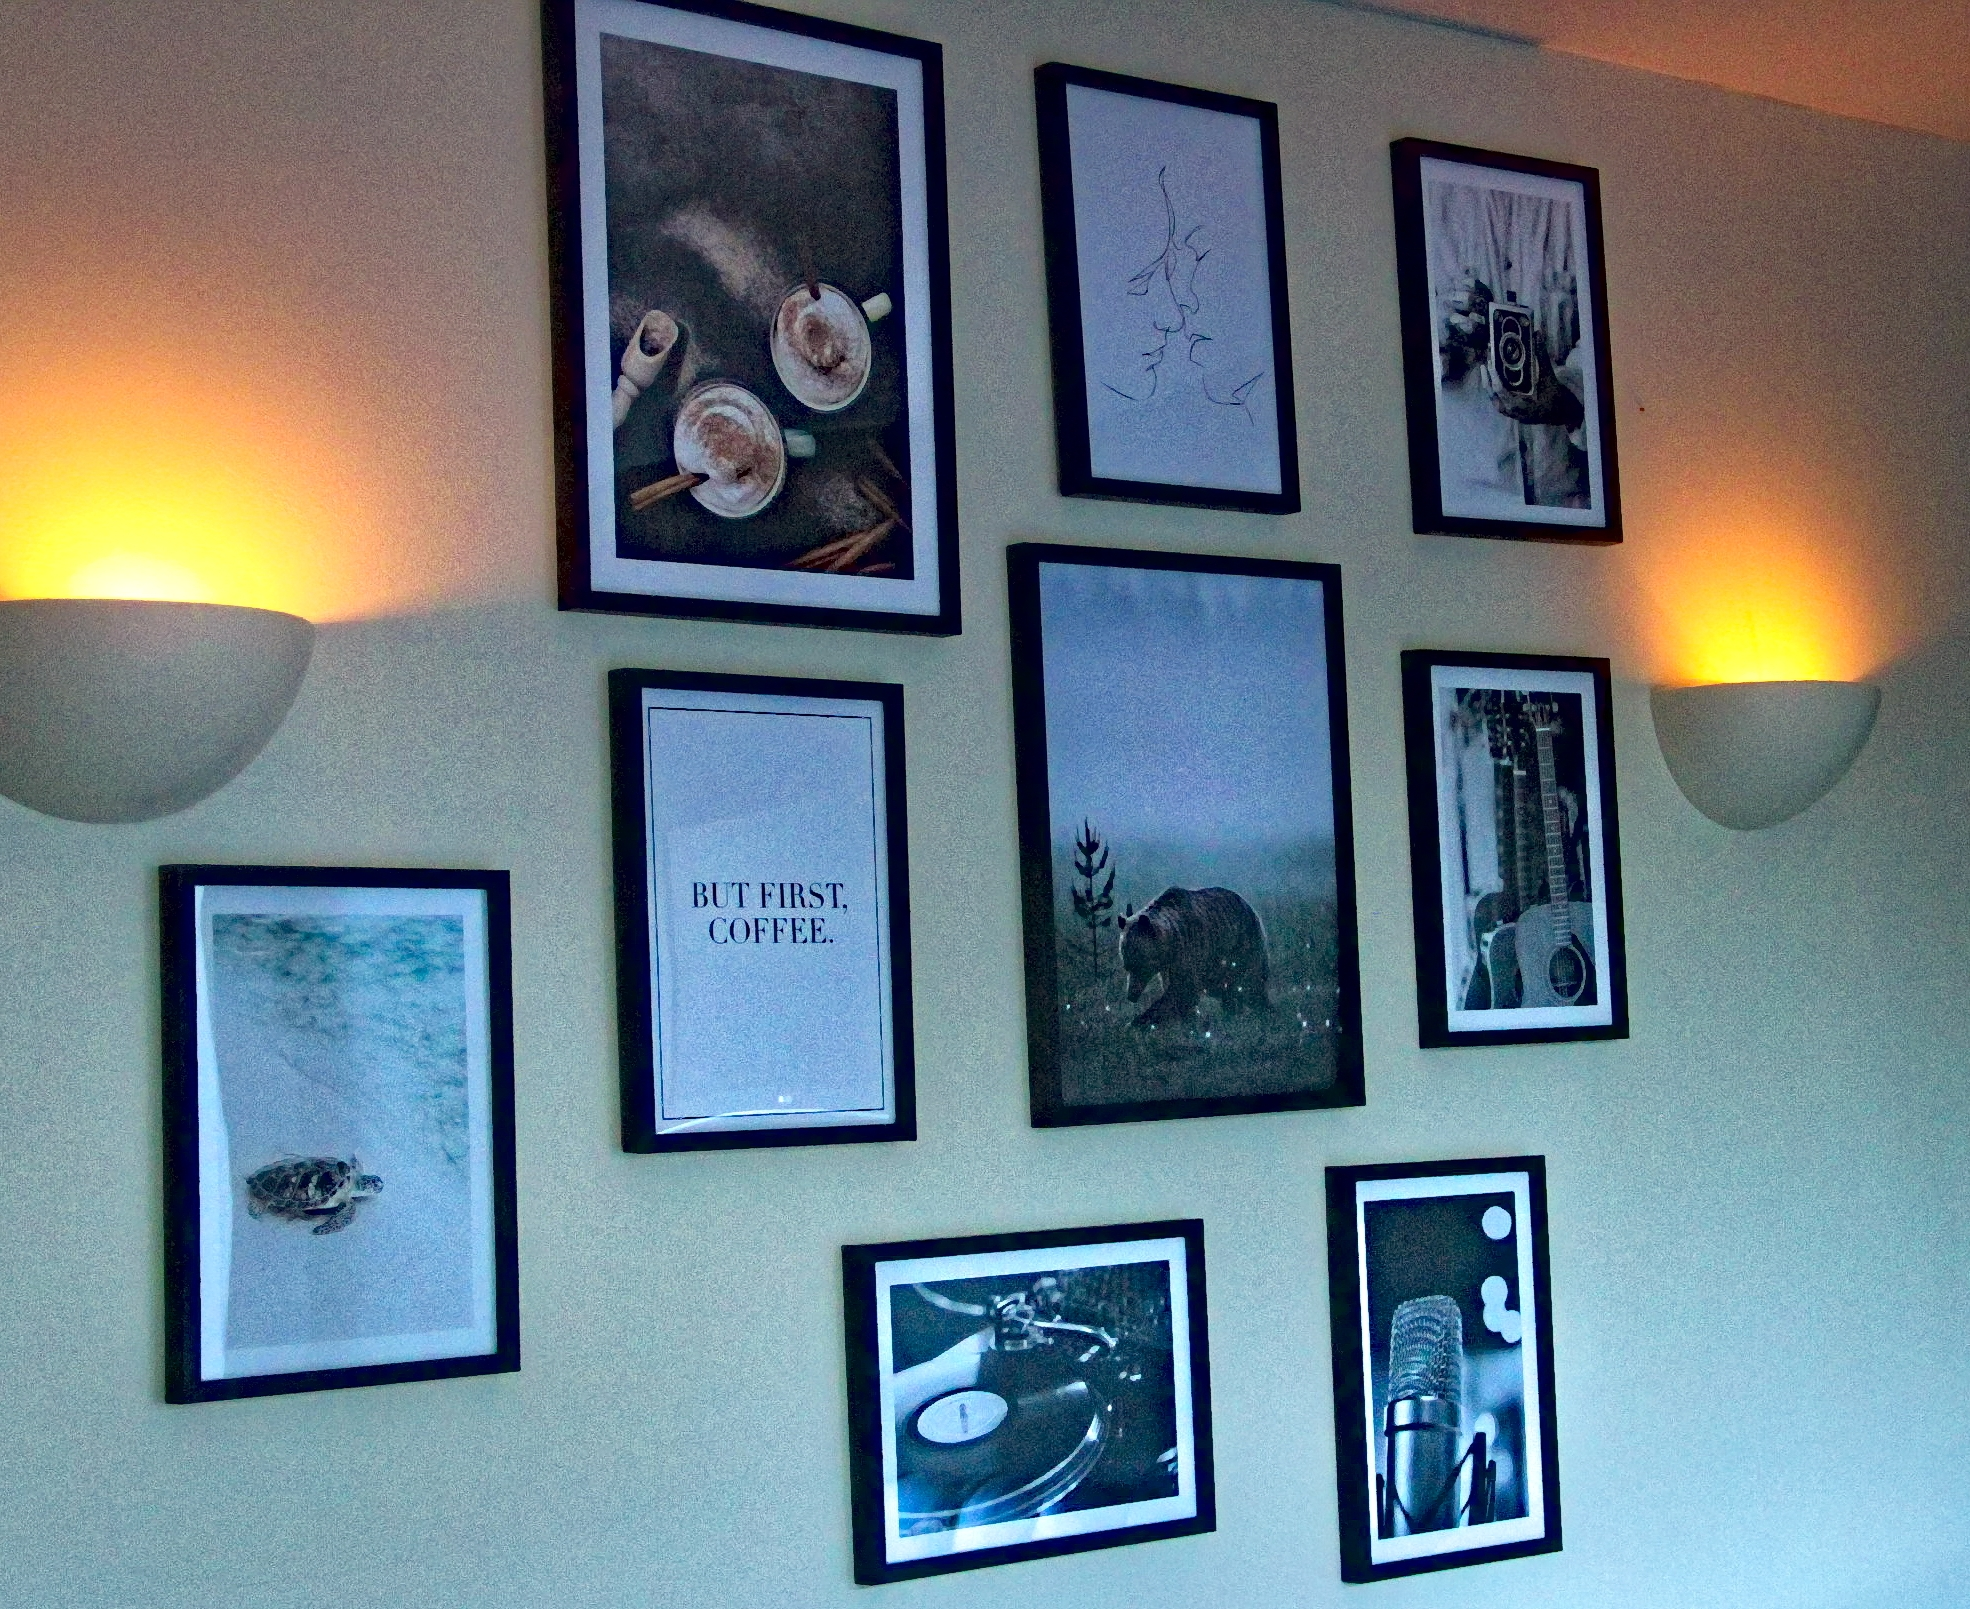 The Art of Display – My Kitchen Poster wall